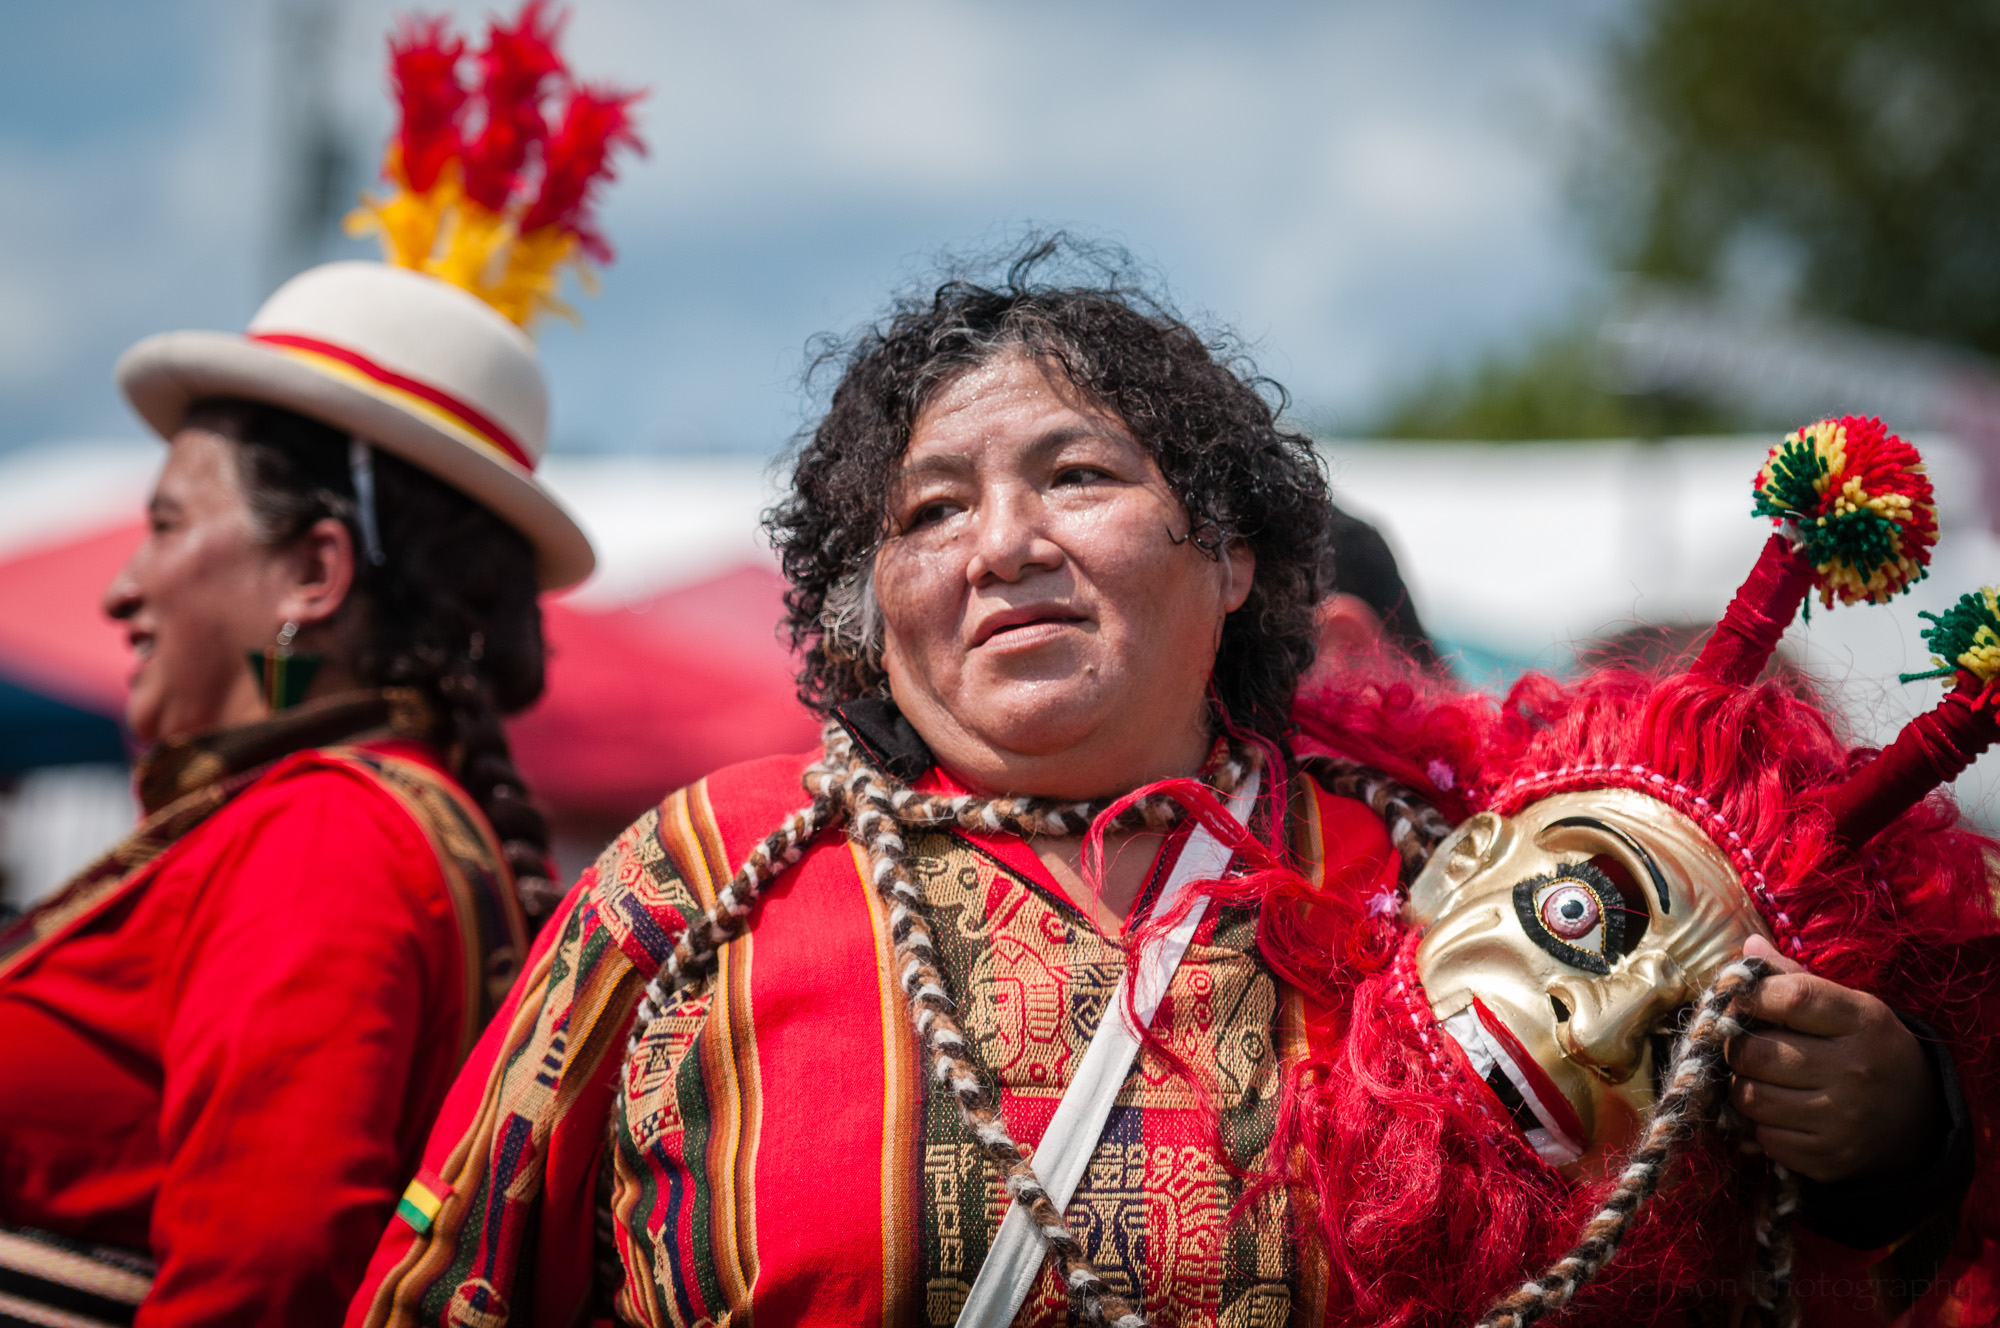 And in this photo we see another performer from Fundacion Socio Cultural Diablada Boliviana who had removed their mask after performing a Wititi dance.